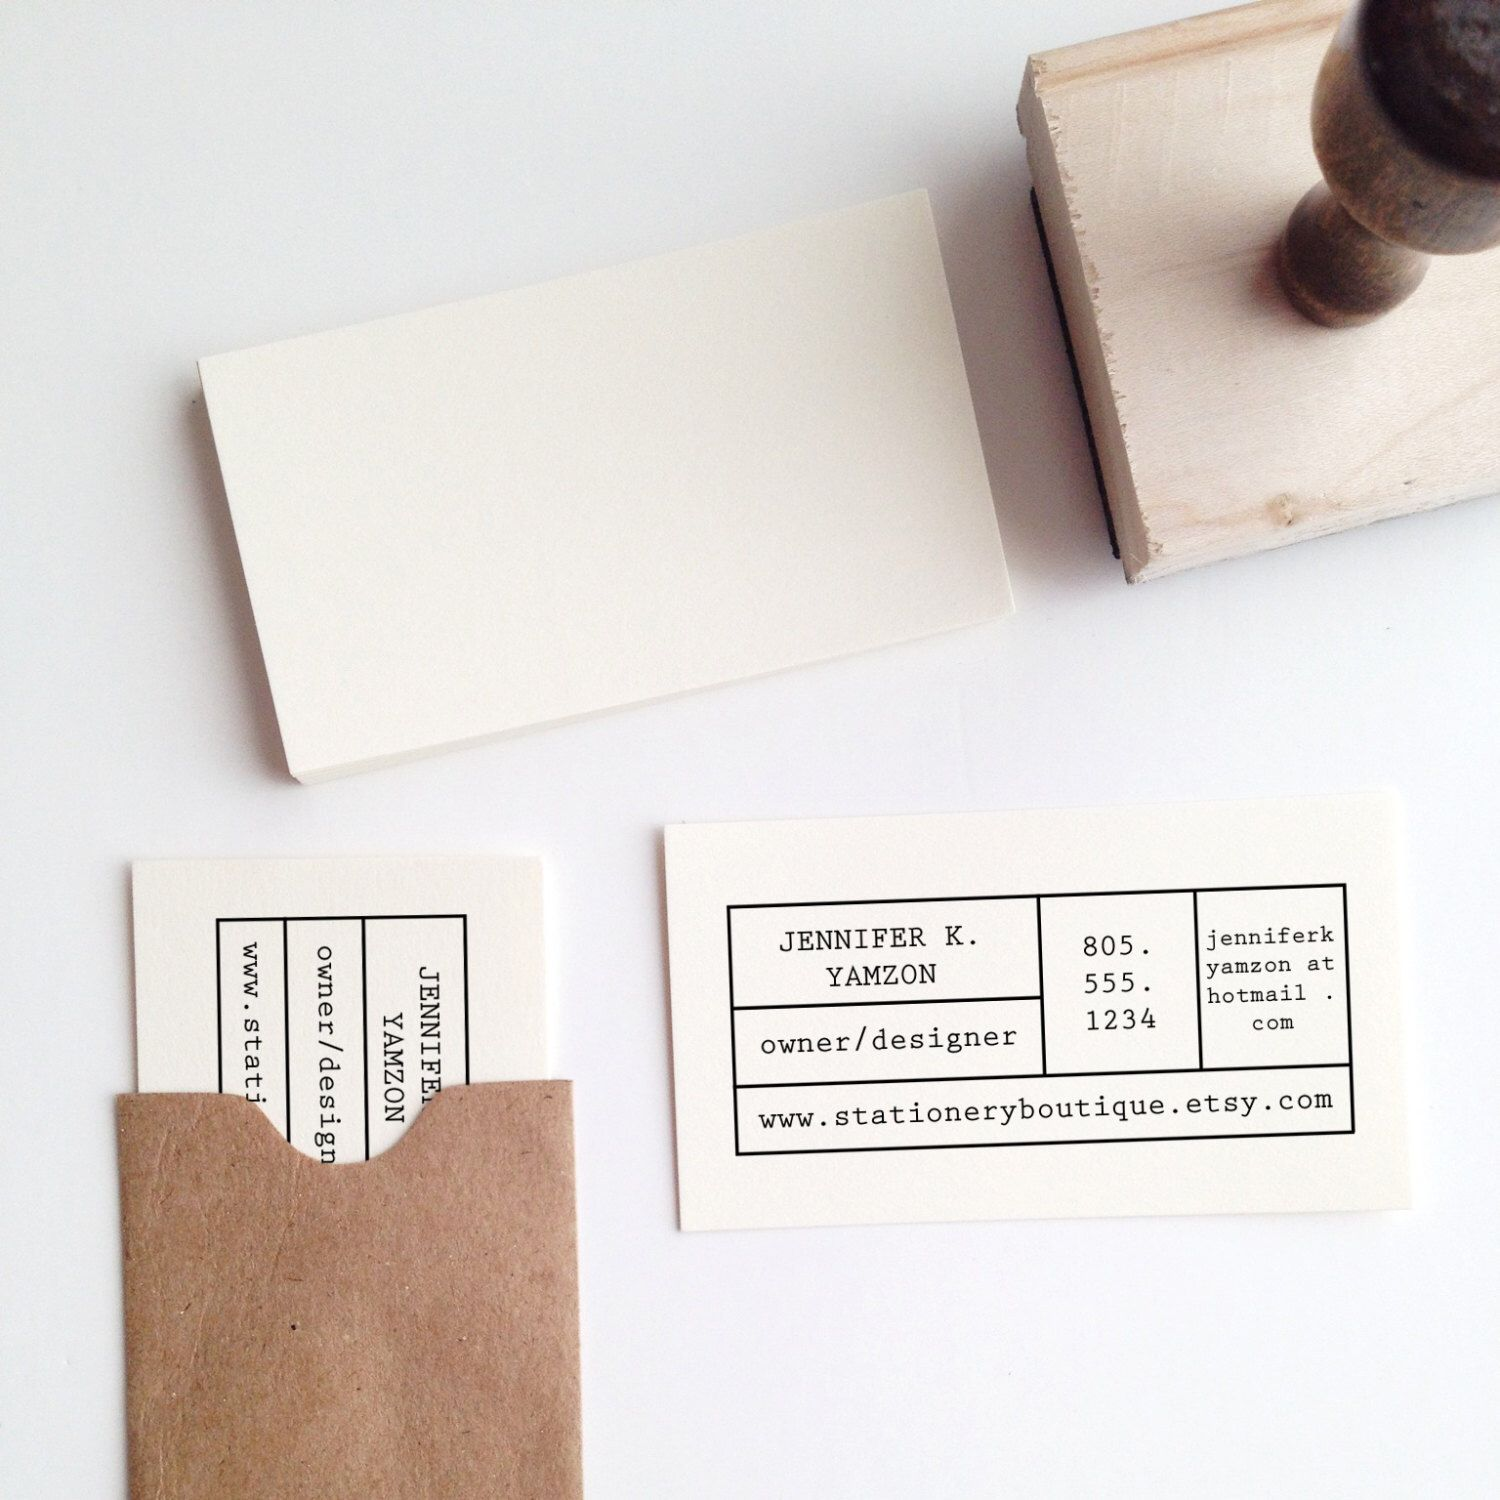 Make your own business card stamp by stationeryboutique on etsy make your own business card stamp by stationeryboutique on etsy https reheart Choice Image